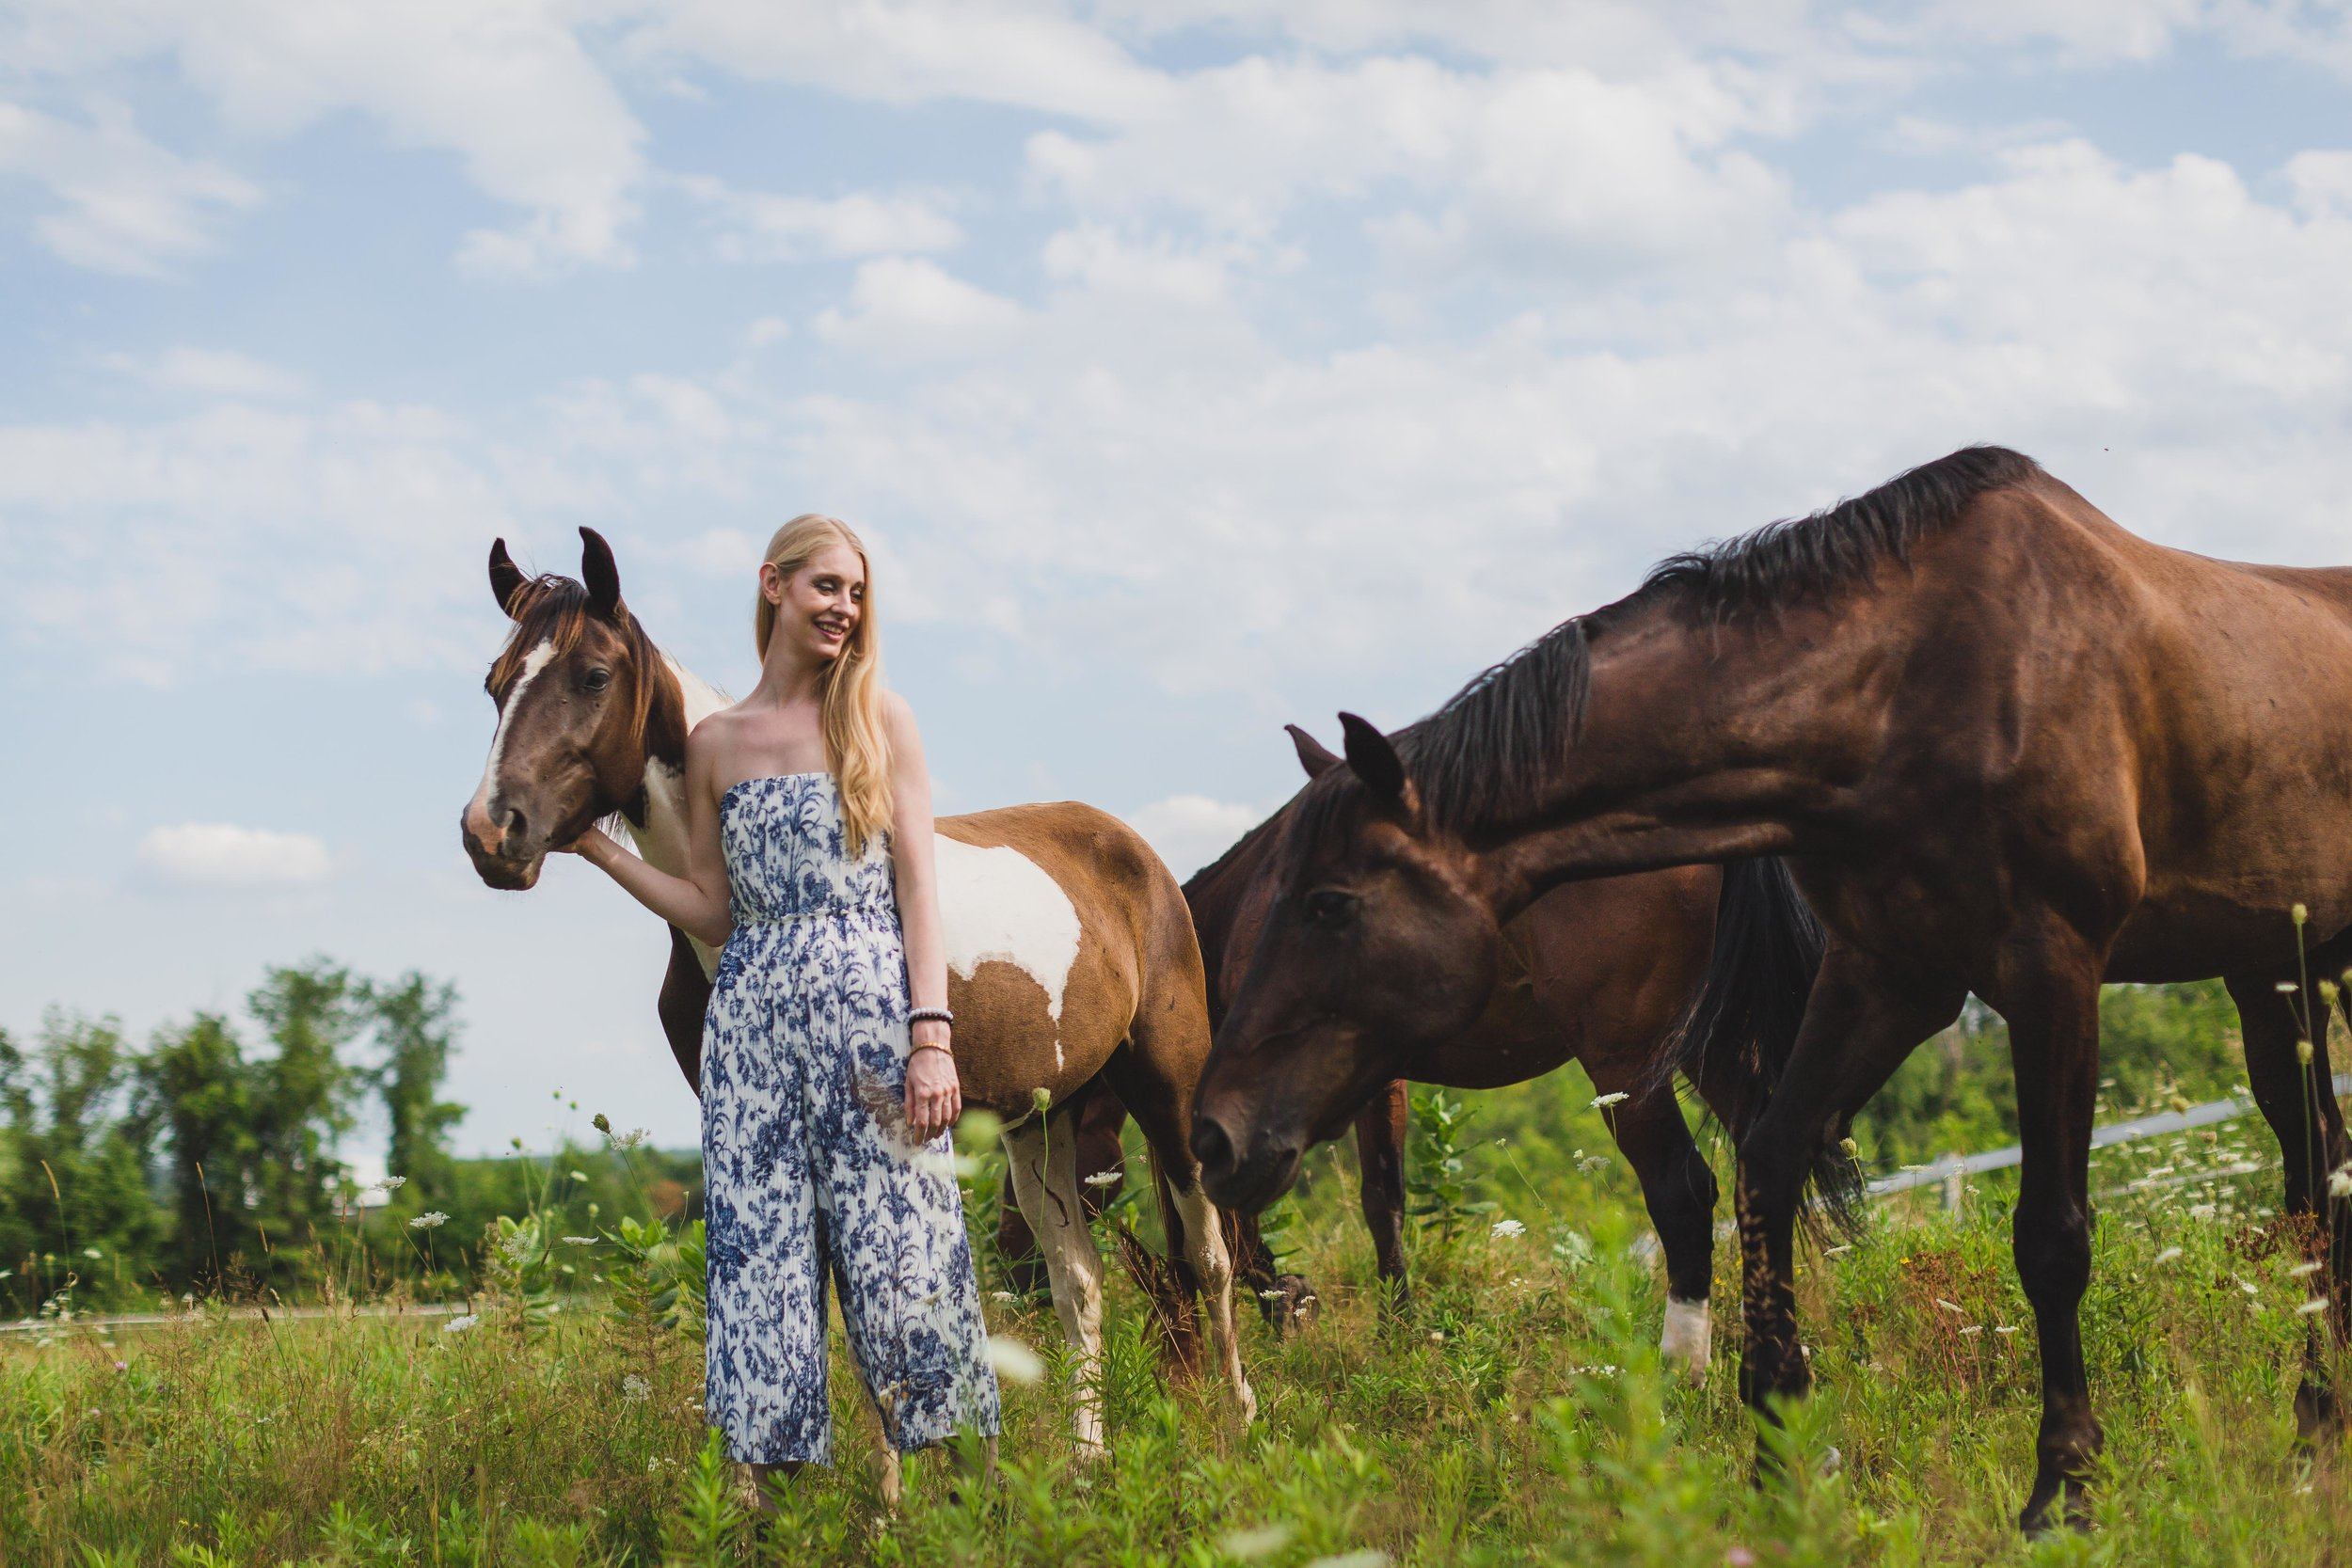 Shelly Burton enjoying the company of Pippy and Bruce, part of our healing with horses herd.